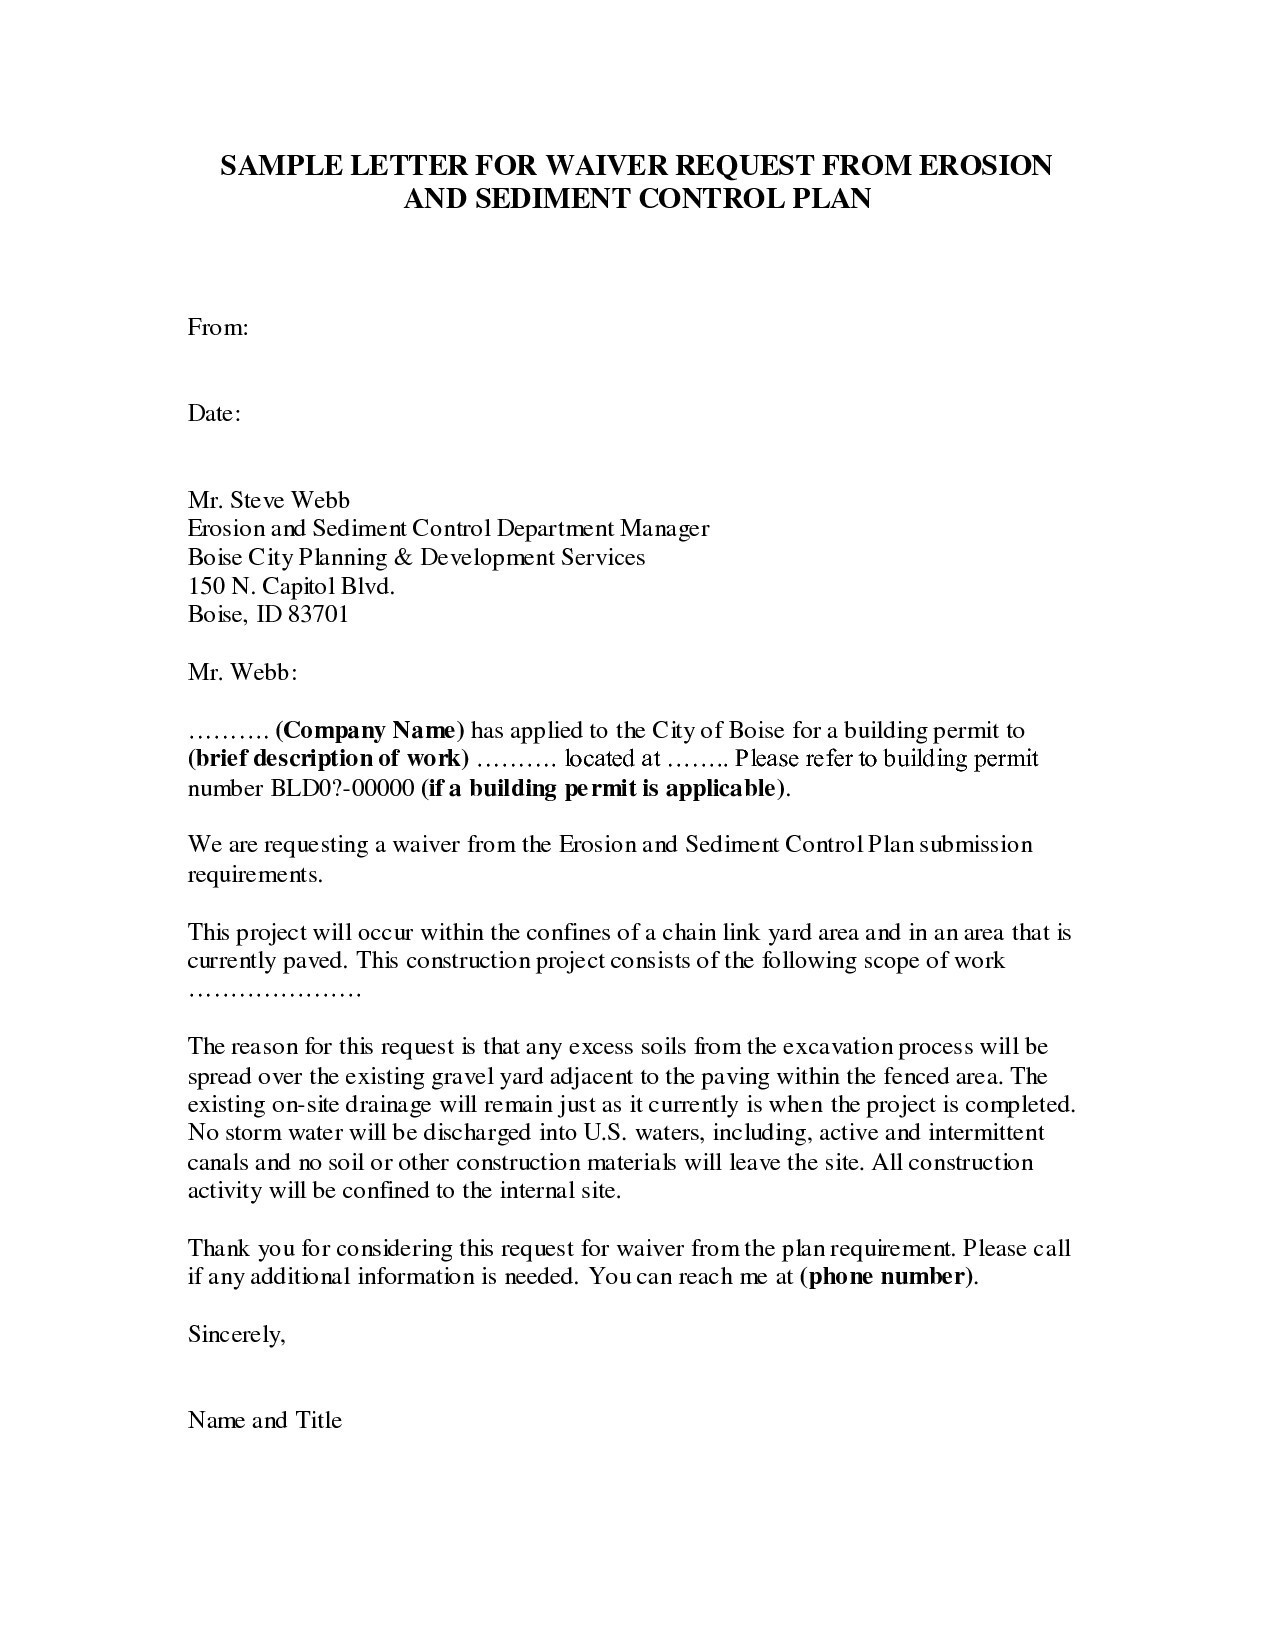 cancellation letter template example-Cancellation Letter Sample Beautiful Sample Waiver Letter Luxury Group Lots 0a 0b 0c 0d – Letteringart 16-i